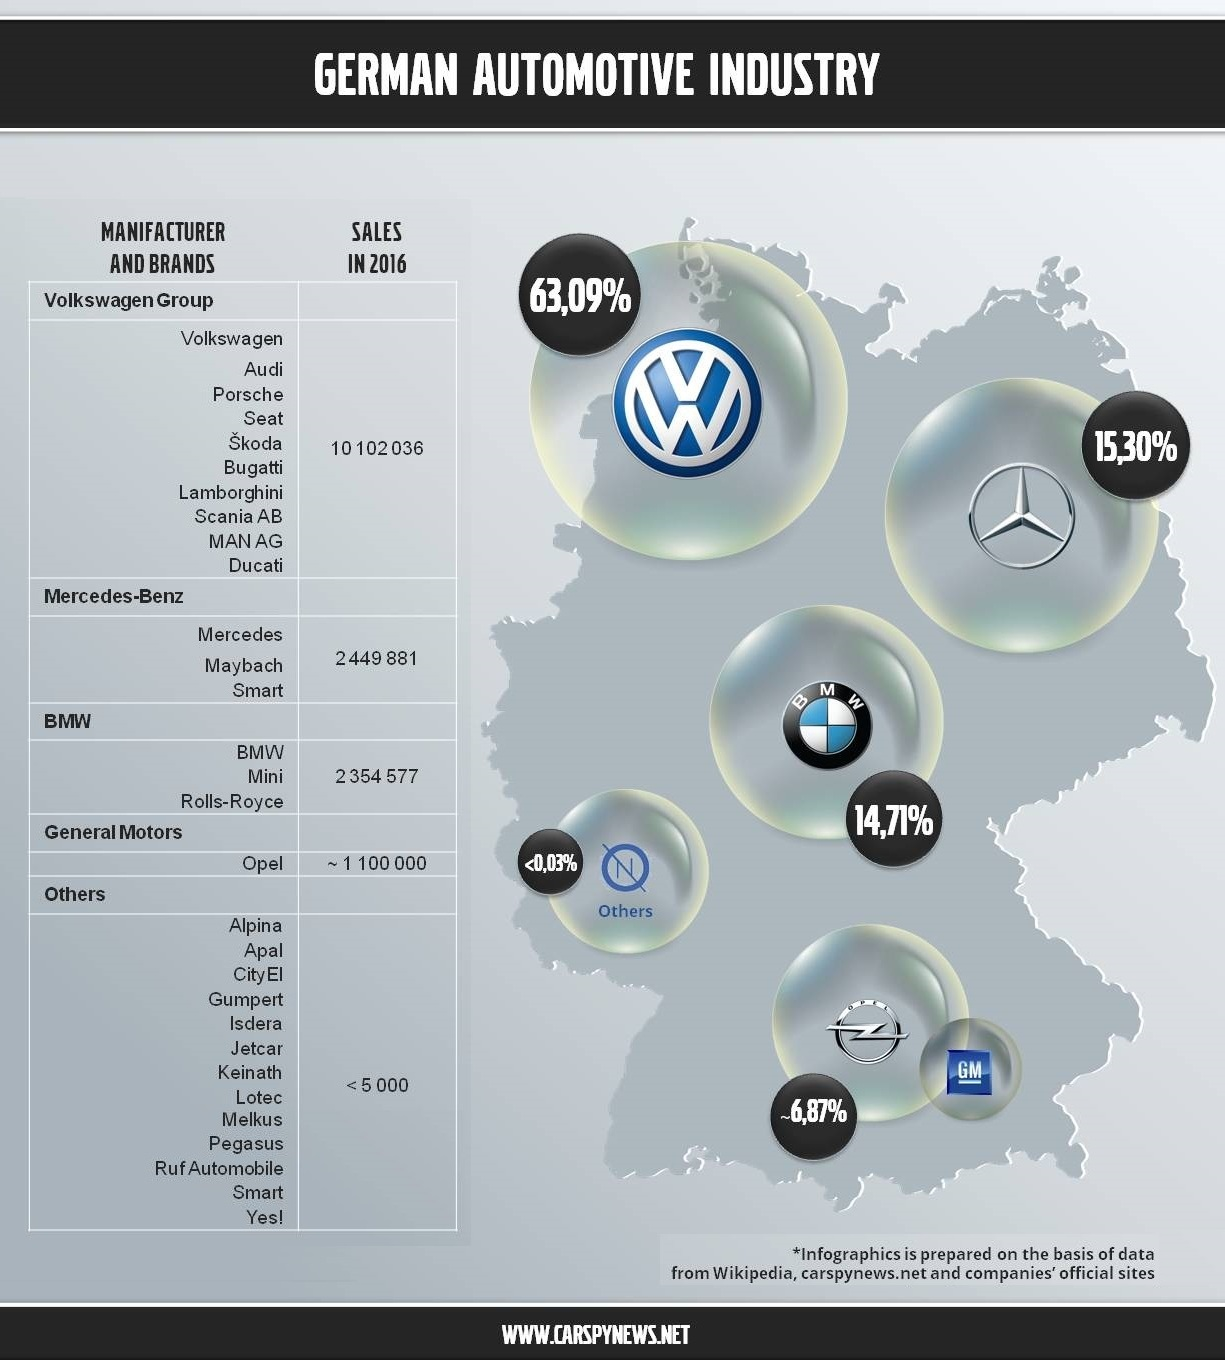 German Automotive Industry 2016